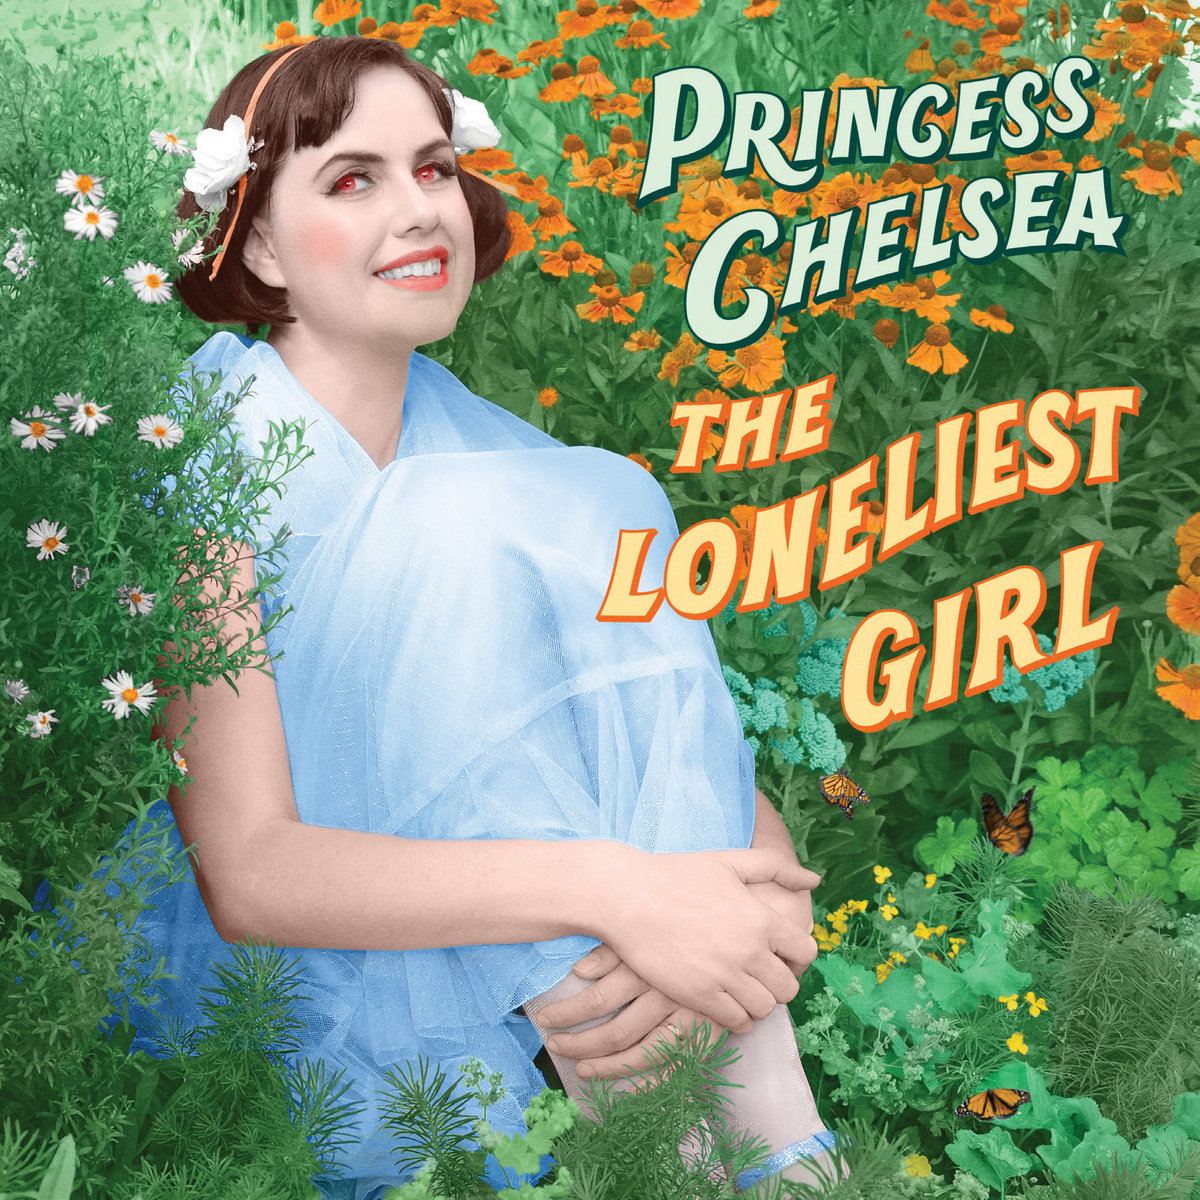 The Loneliest Girl by Princess Chelsea image